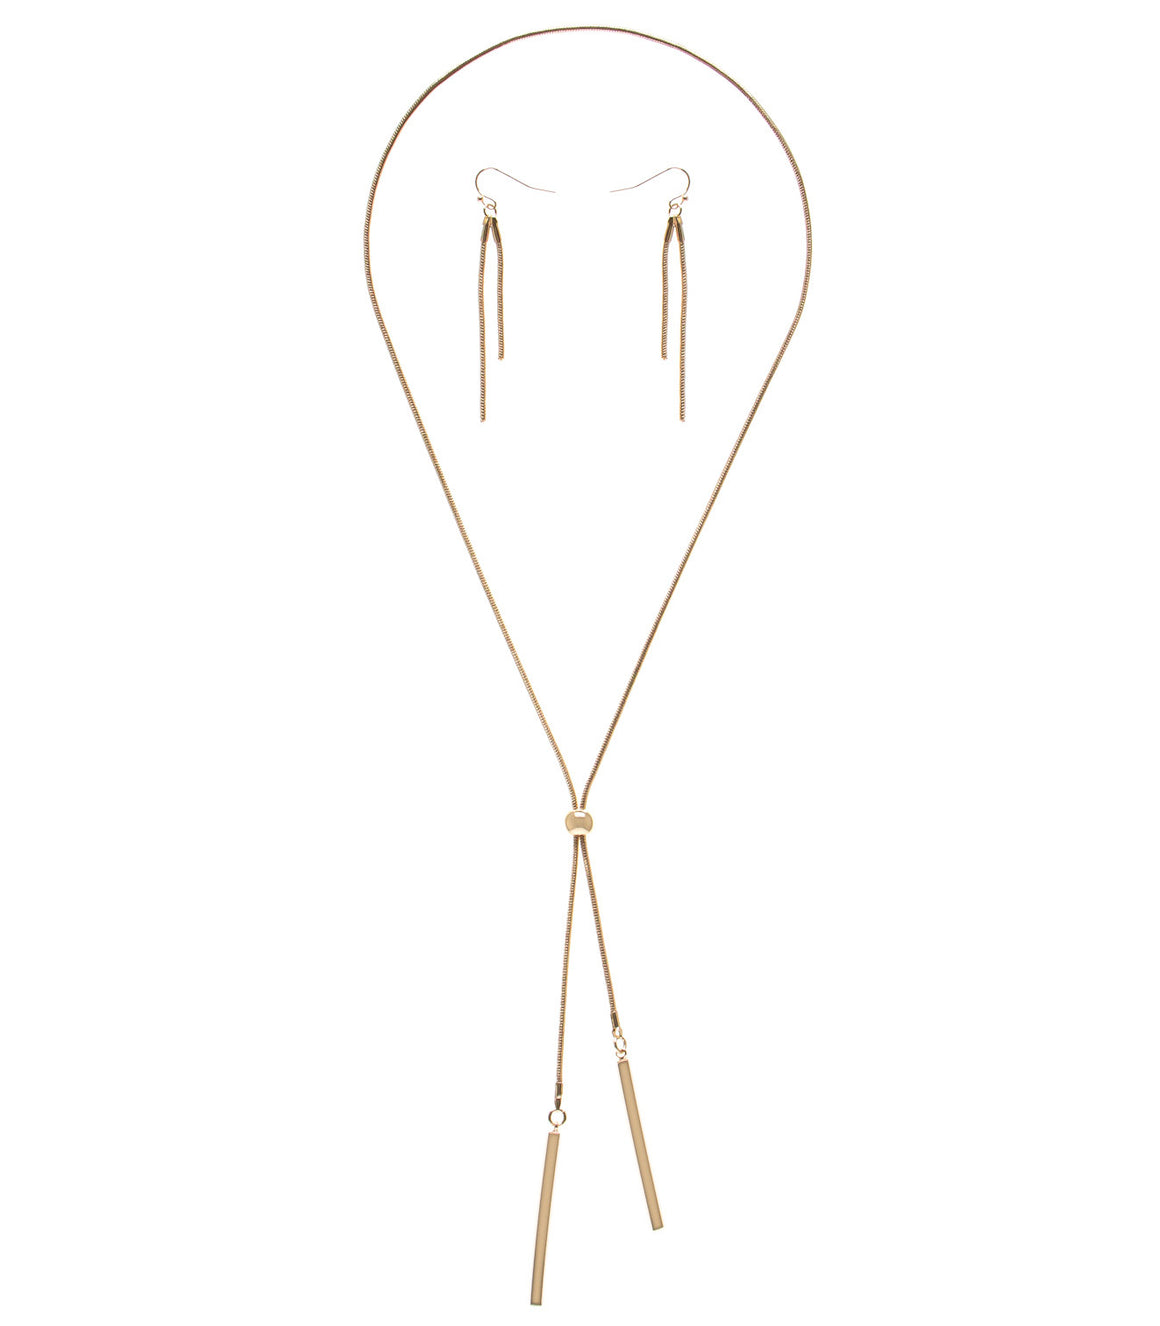 Bar Bolo Adjustable Necklace Set in Gold-Tone